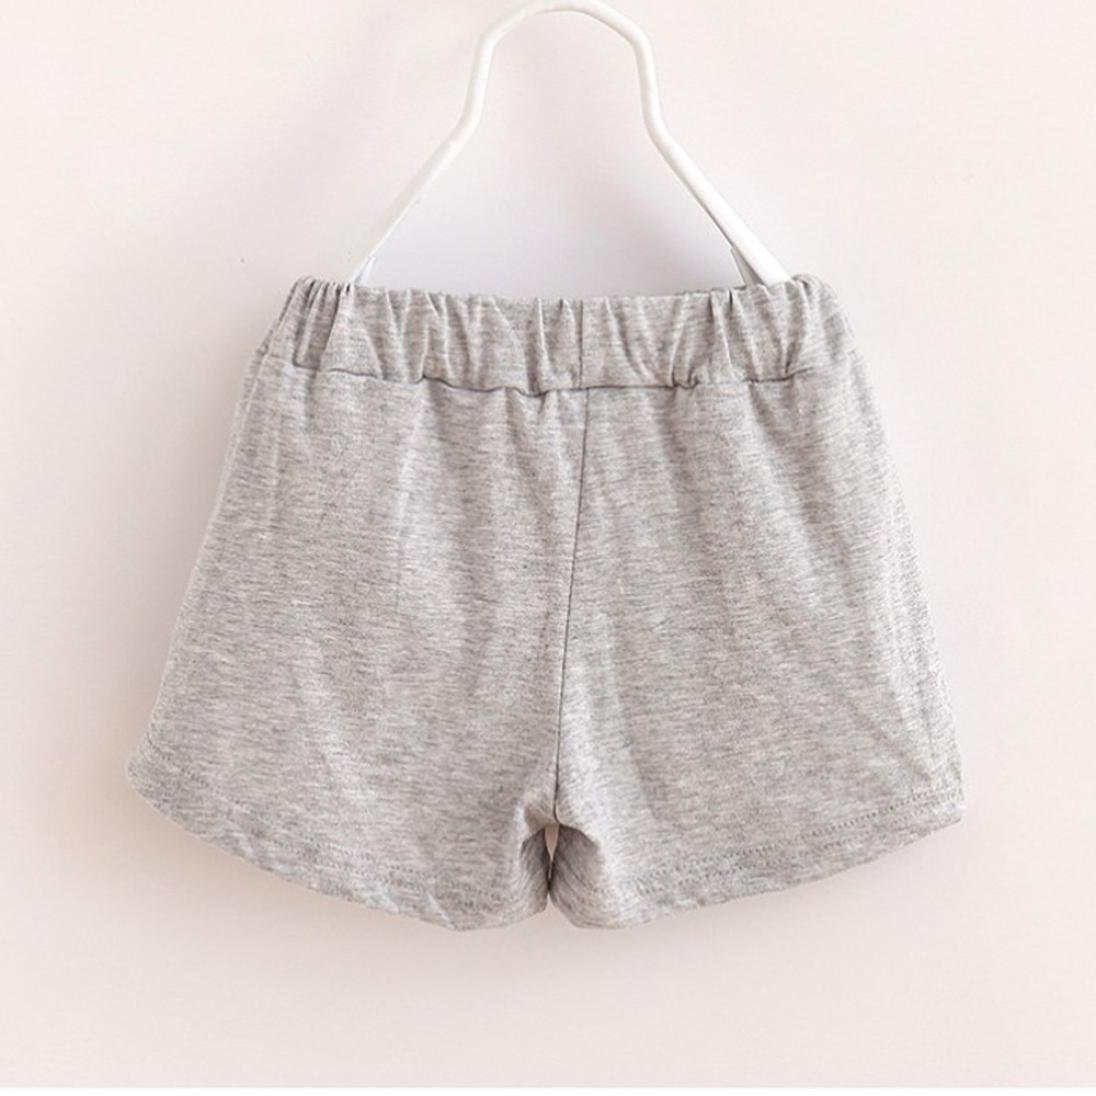 Kimanli Summer Childrens Cotton Shorts Boy and Girl Baby Simple Fashion Pants